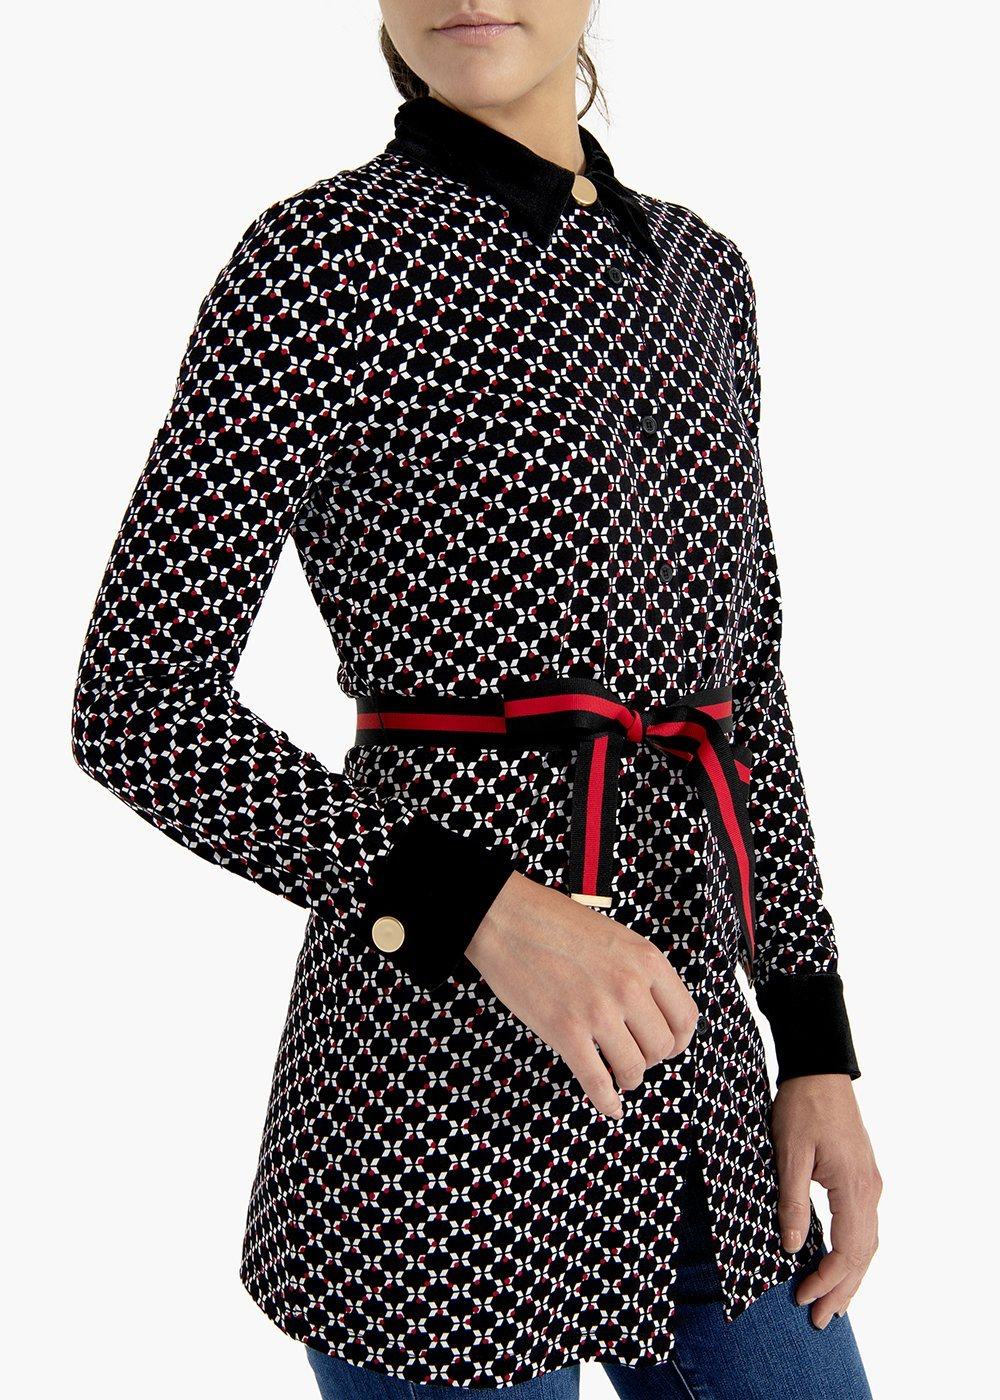 T-shirt Sabrin in micro geometric pattern viscose jersey - Black / White Fantasia - Woman